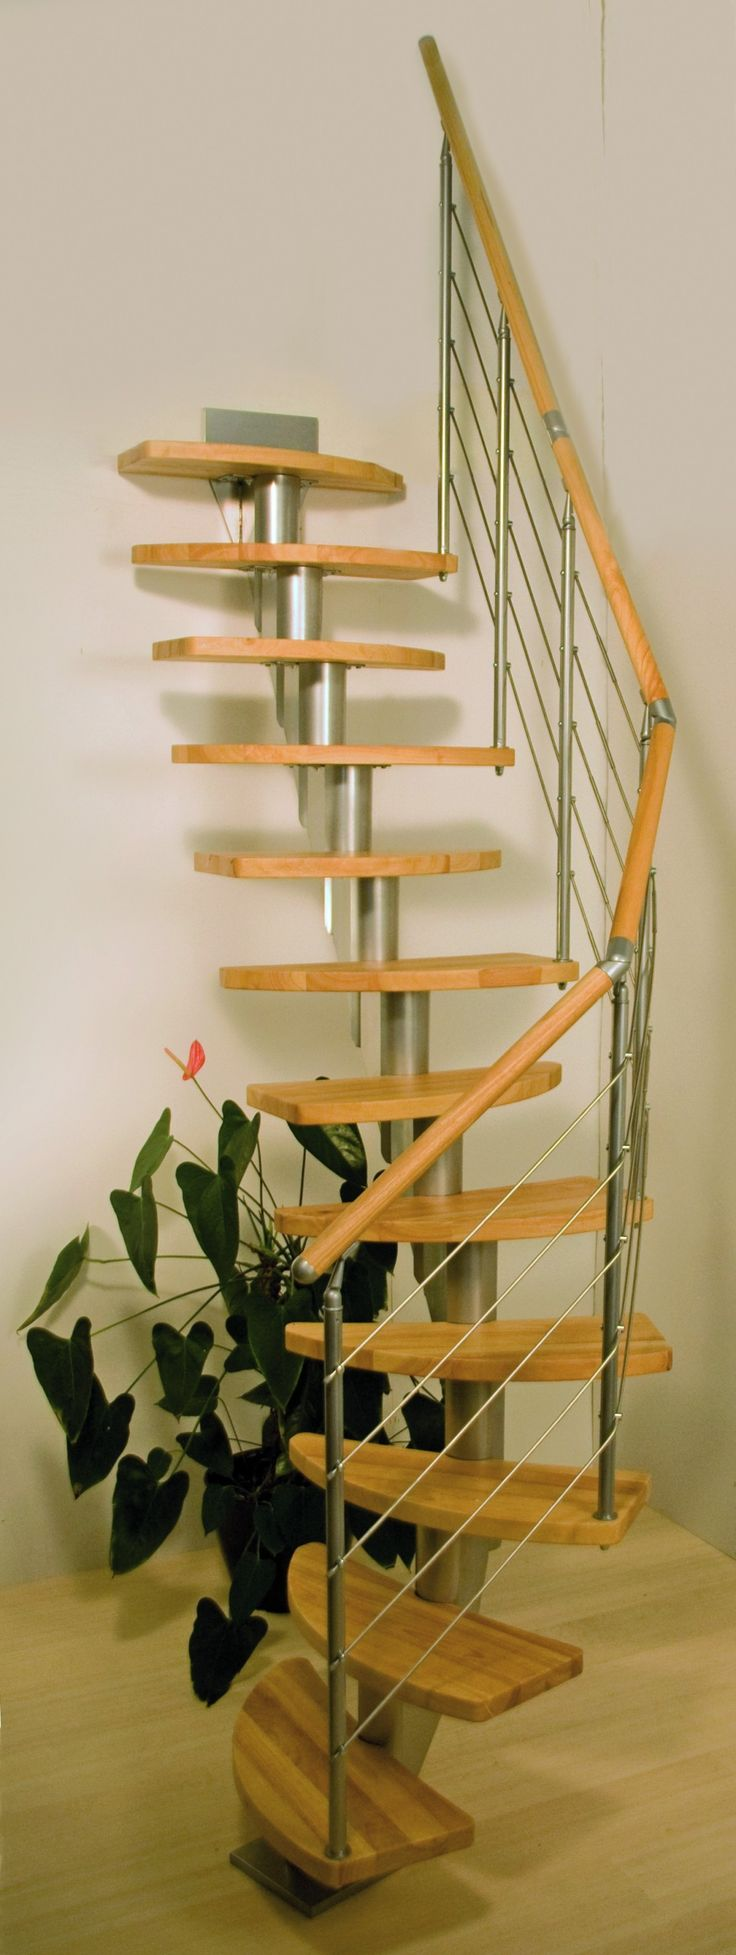 Stunning Small Space Staircase Design Ideas With Floating Stairs Shape Also Wooden Treads And Metal Baluster Also Wooden Handrails With Spiral Staircases Plus Spiral Stairs, Chic Small Space Staircases Design Ideas: Furniture